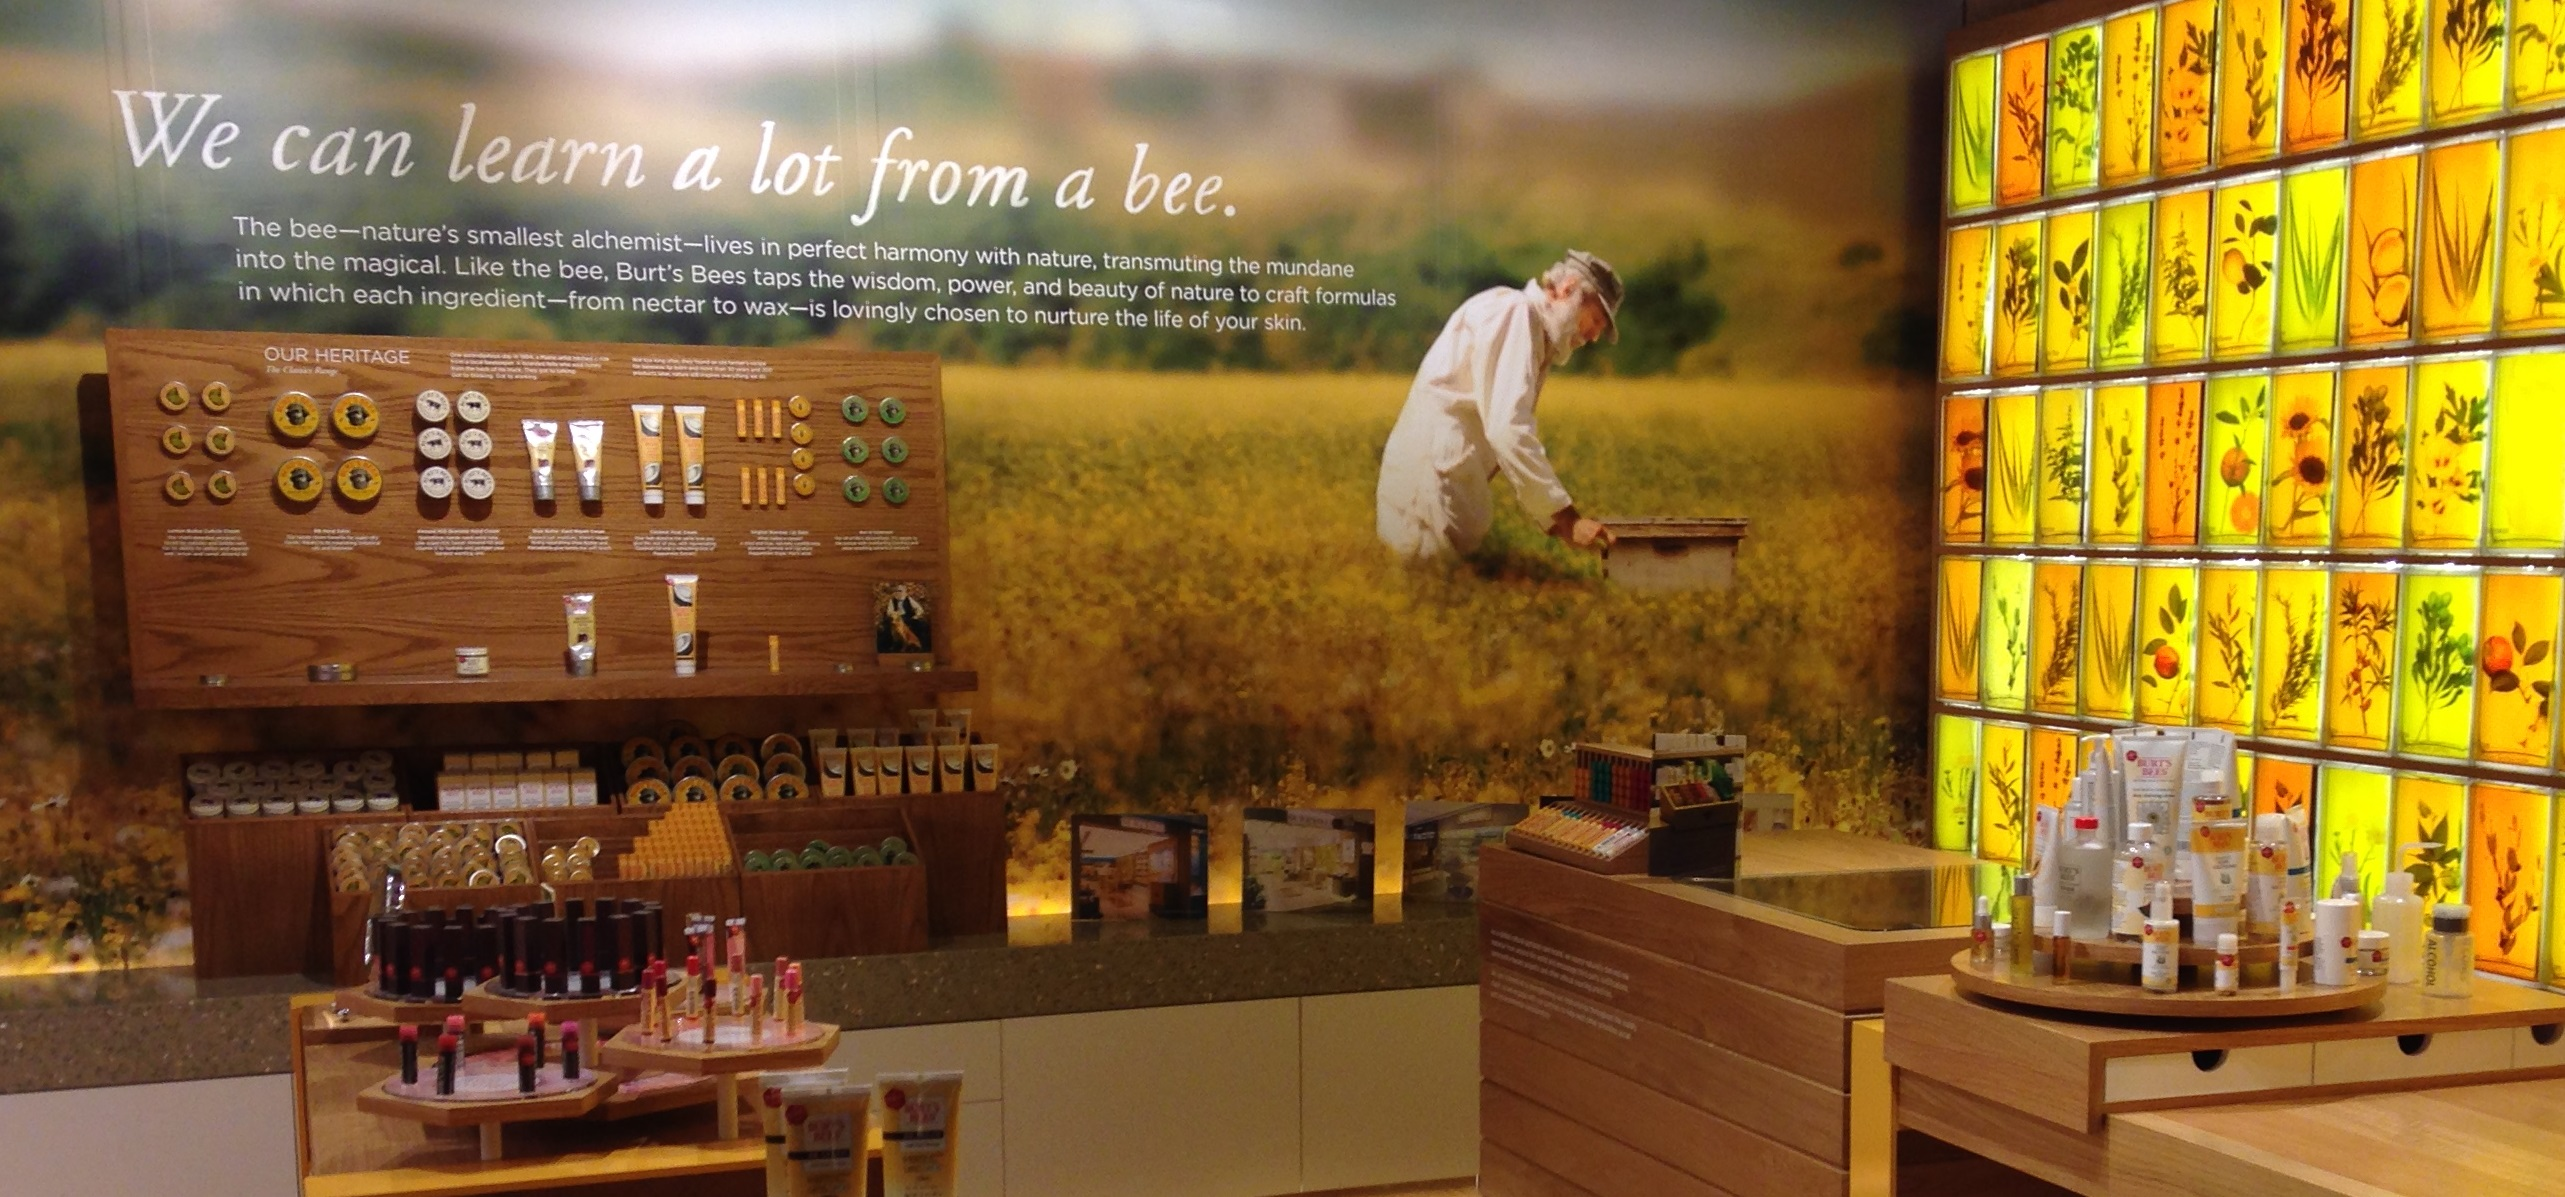 bb-we-can-lean-from-bees-store